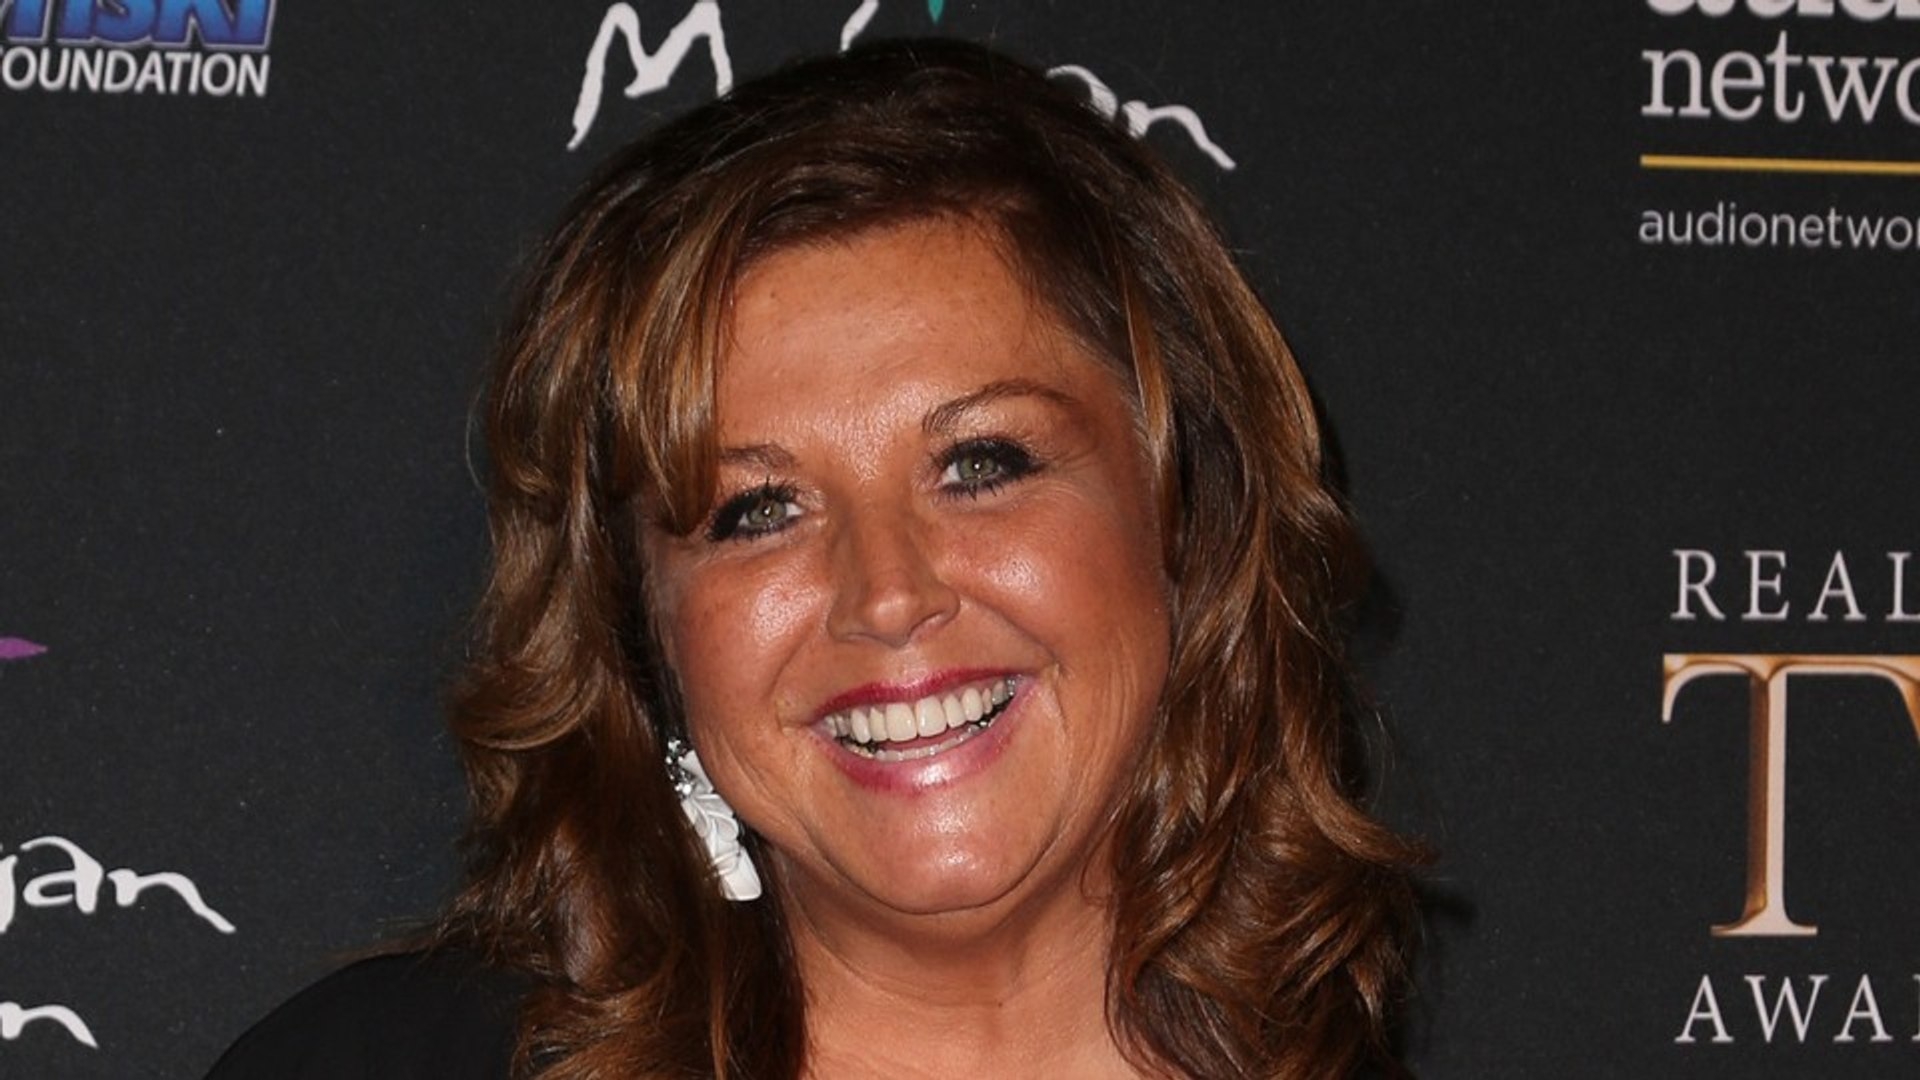 Abby Lee Miller Quits 'Dance Moms' in Angry Instagram Post